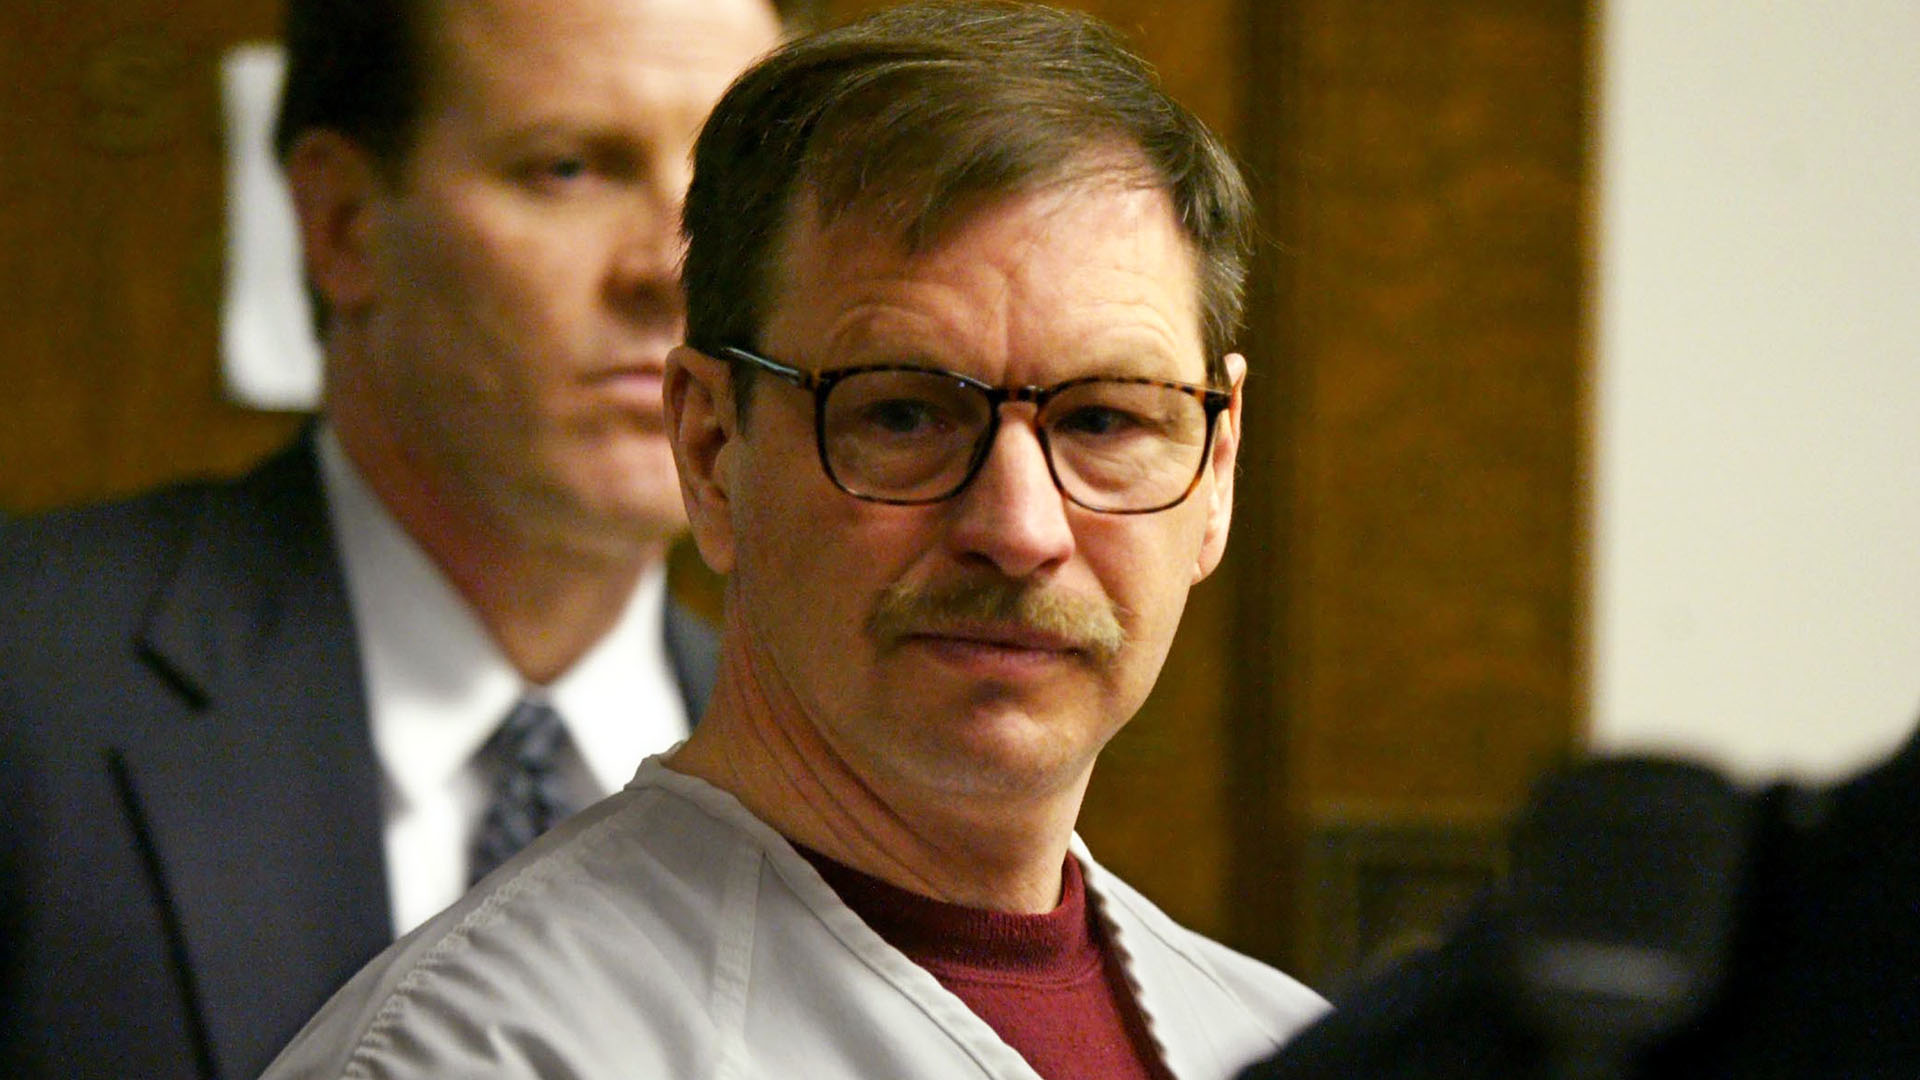 Did Green River Killer Gary Ridgway's Sexual Obsession Turn Him Into a Serial Killer?